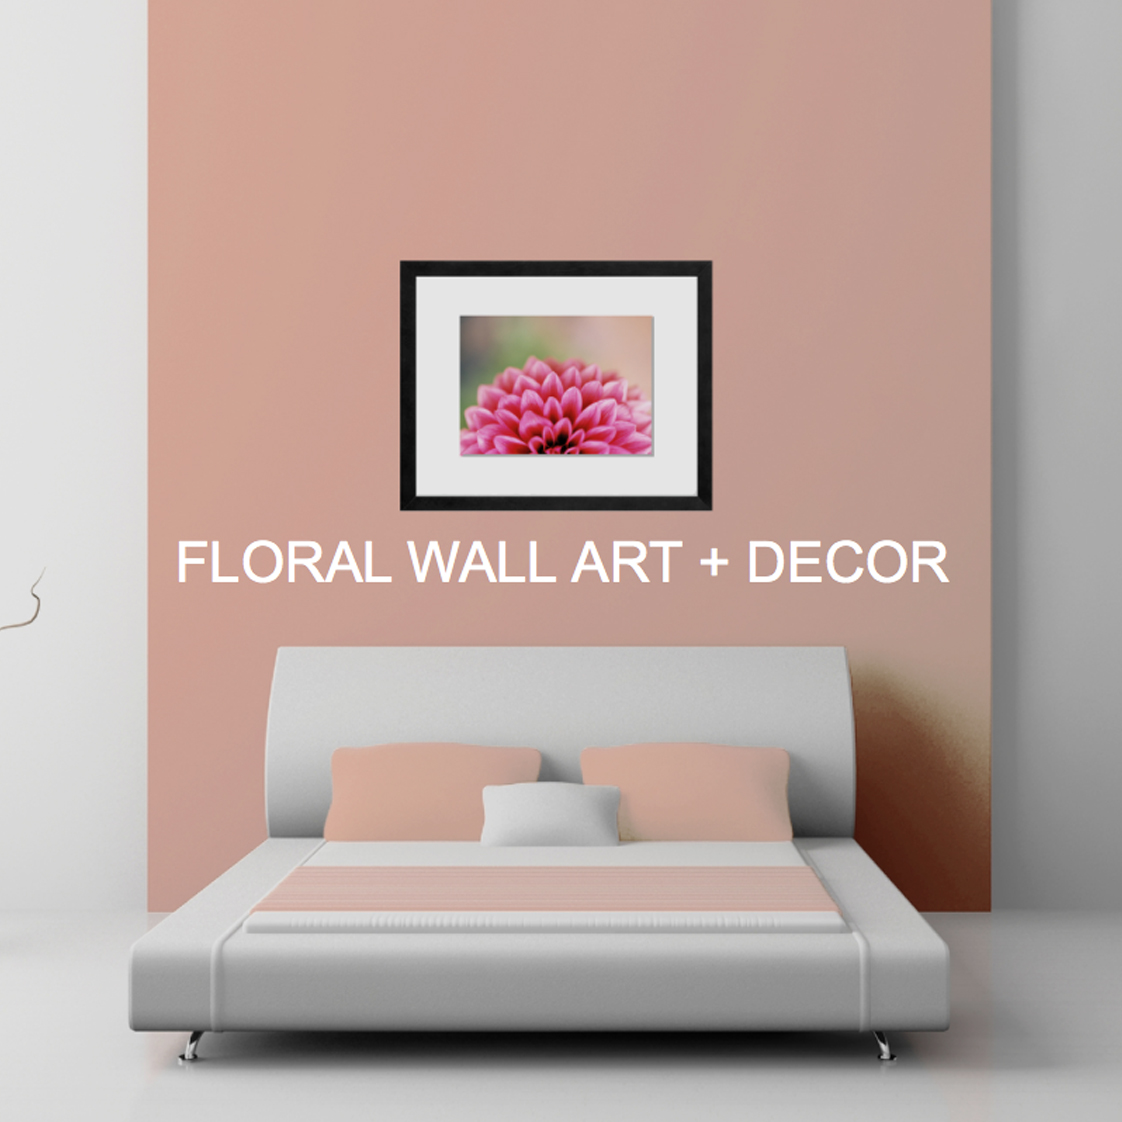 FLORAL-WALL-ART-AND-DECOR.jpg